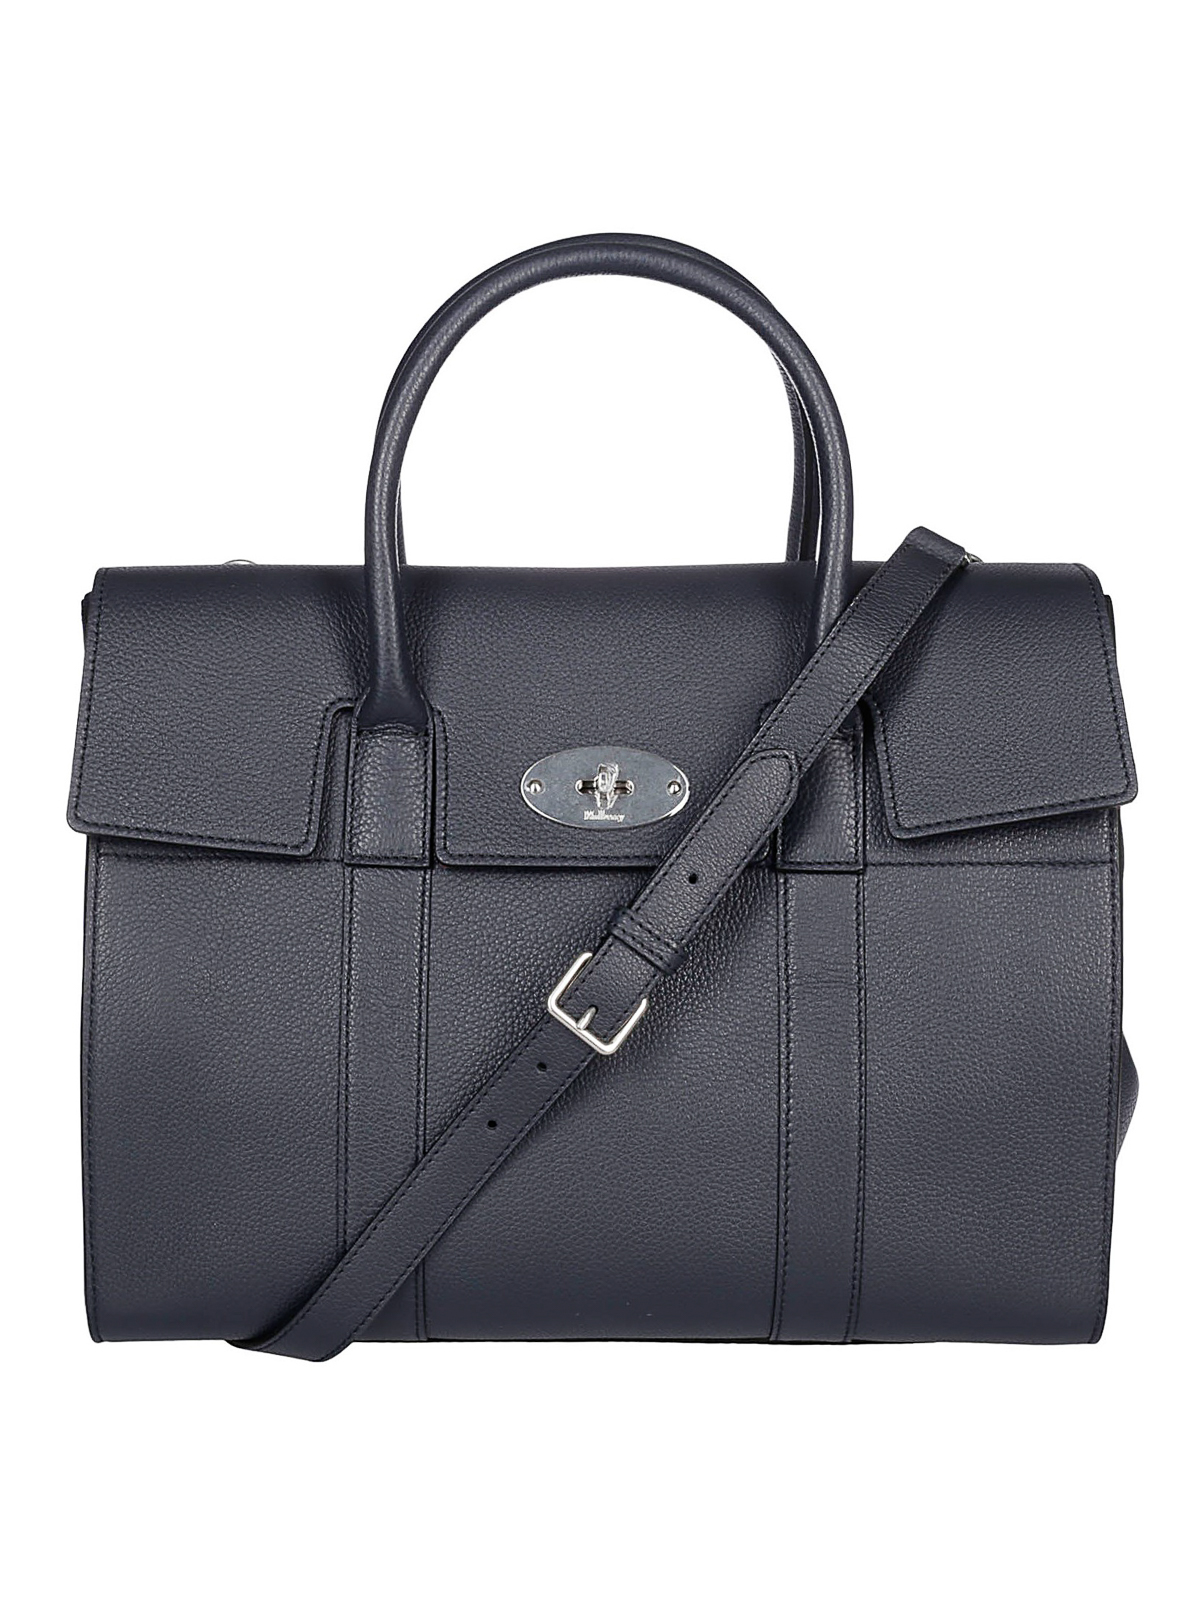 4c2686e9b2 Mulberry - Bayswater midnight blue leather tote - totes bags ...